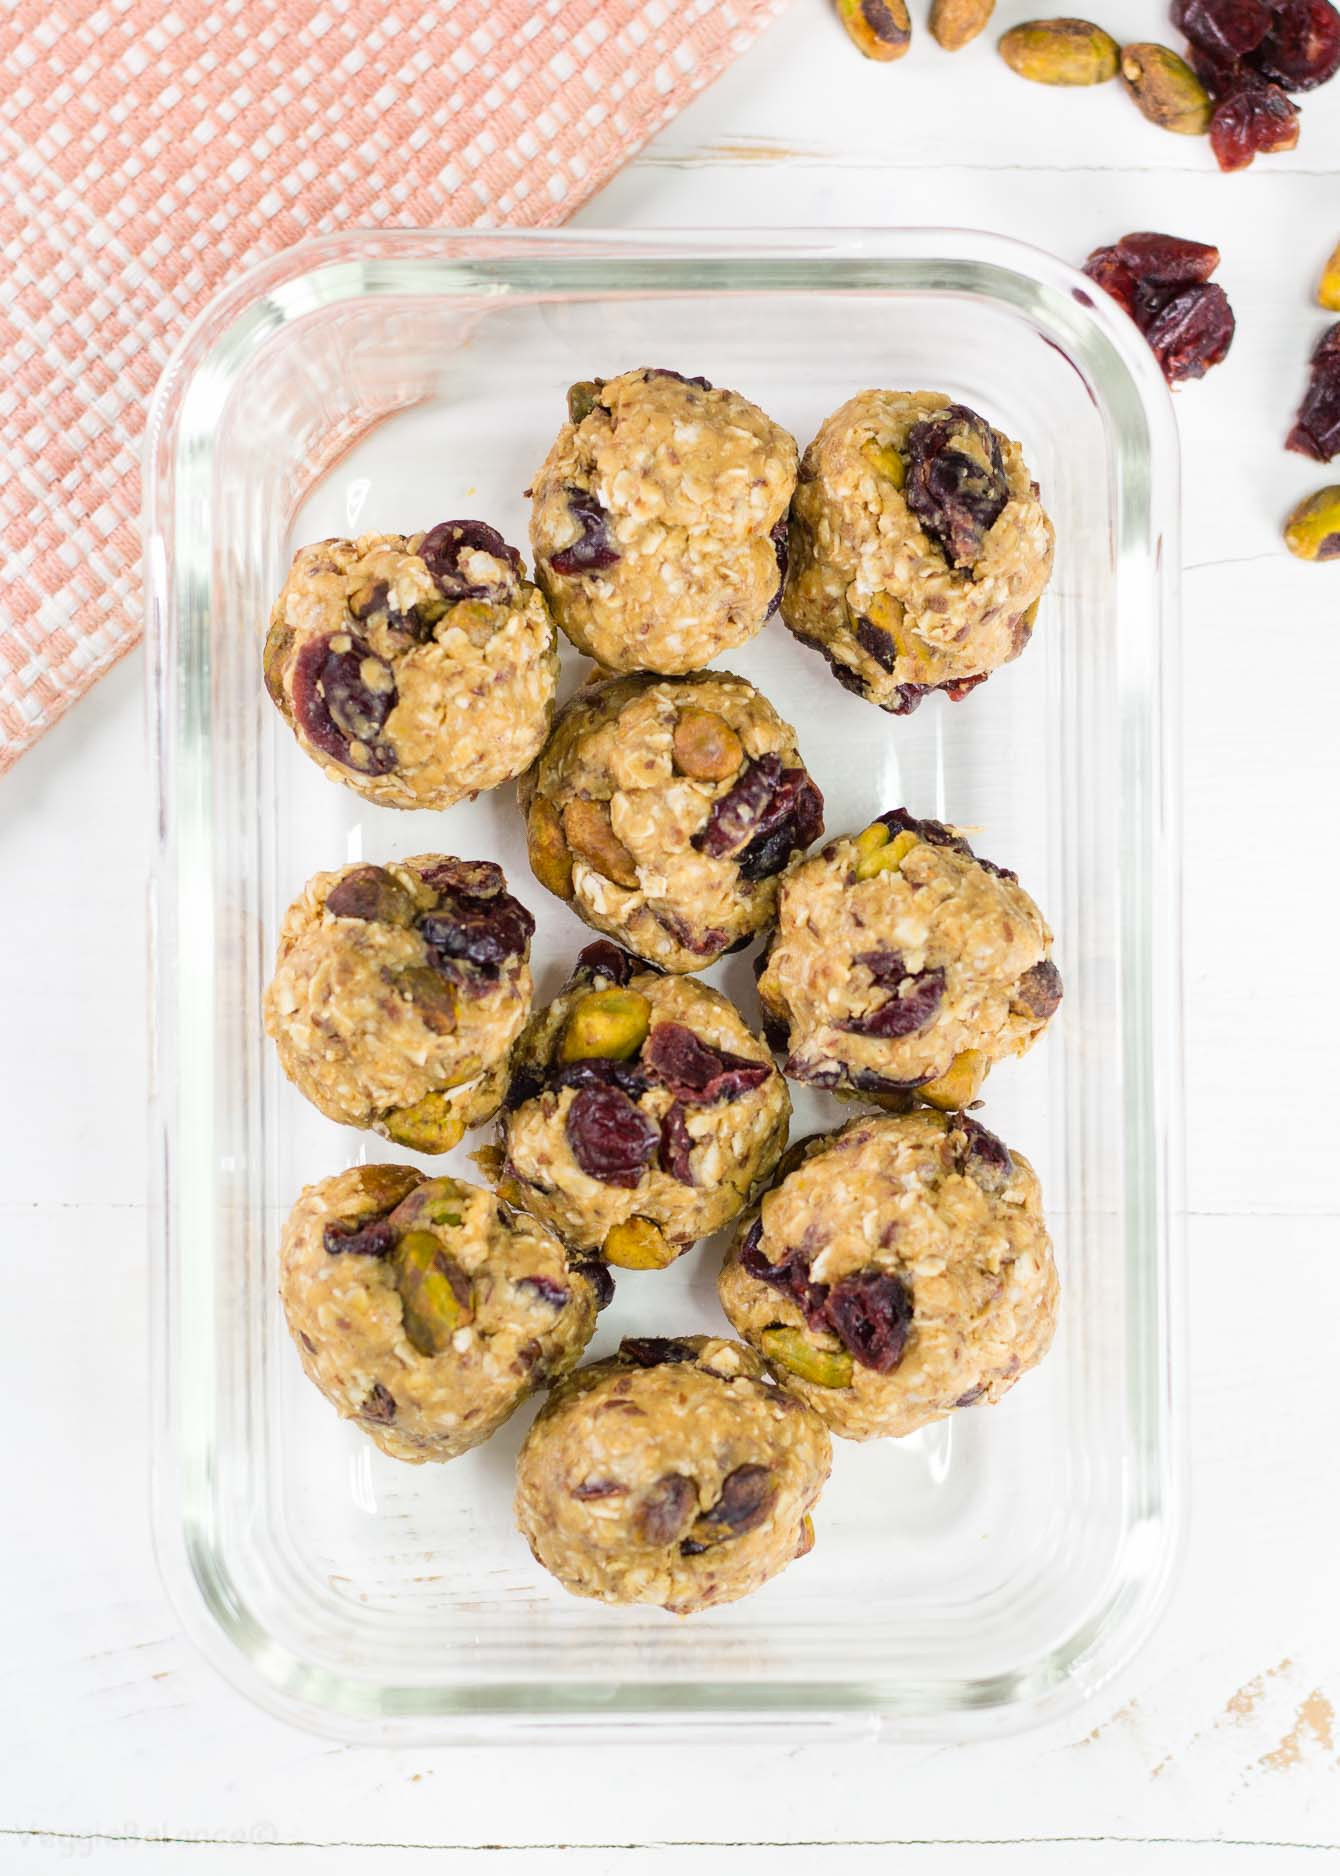 Cranberry Pistachio Energy Bites bring the business of getting up and going within reach.